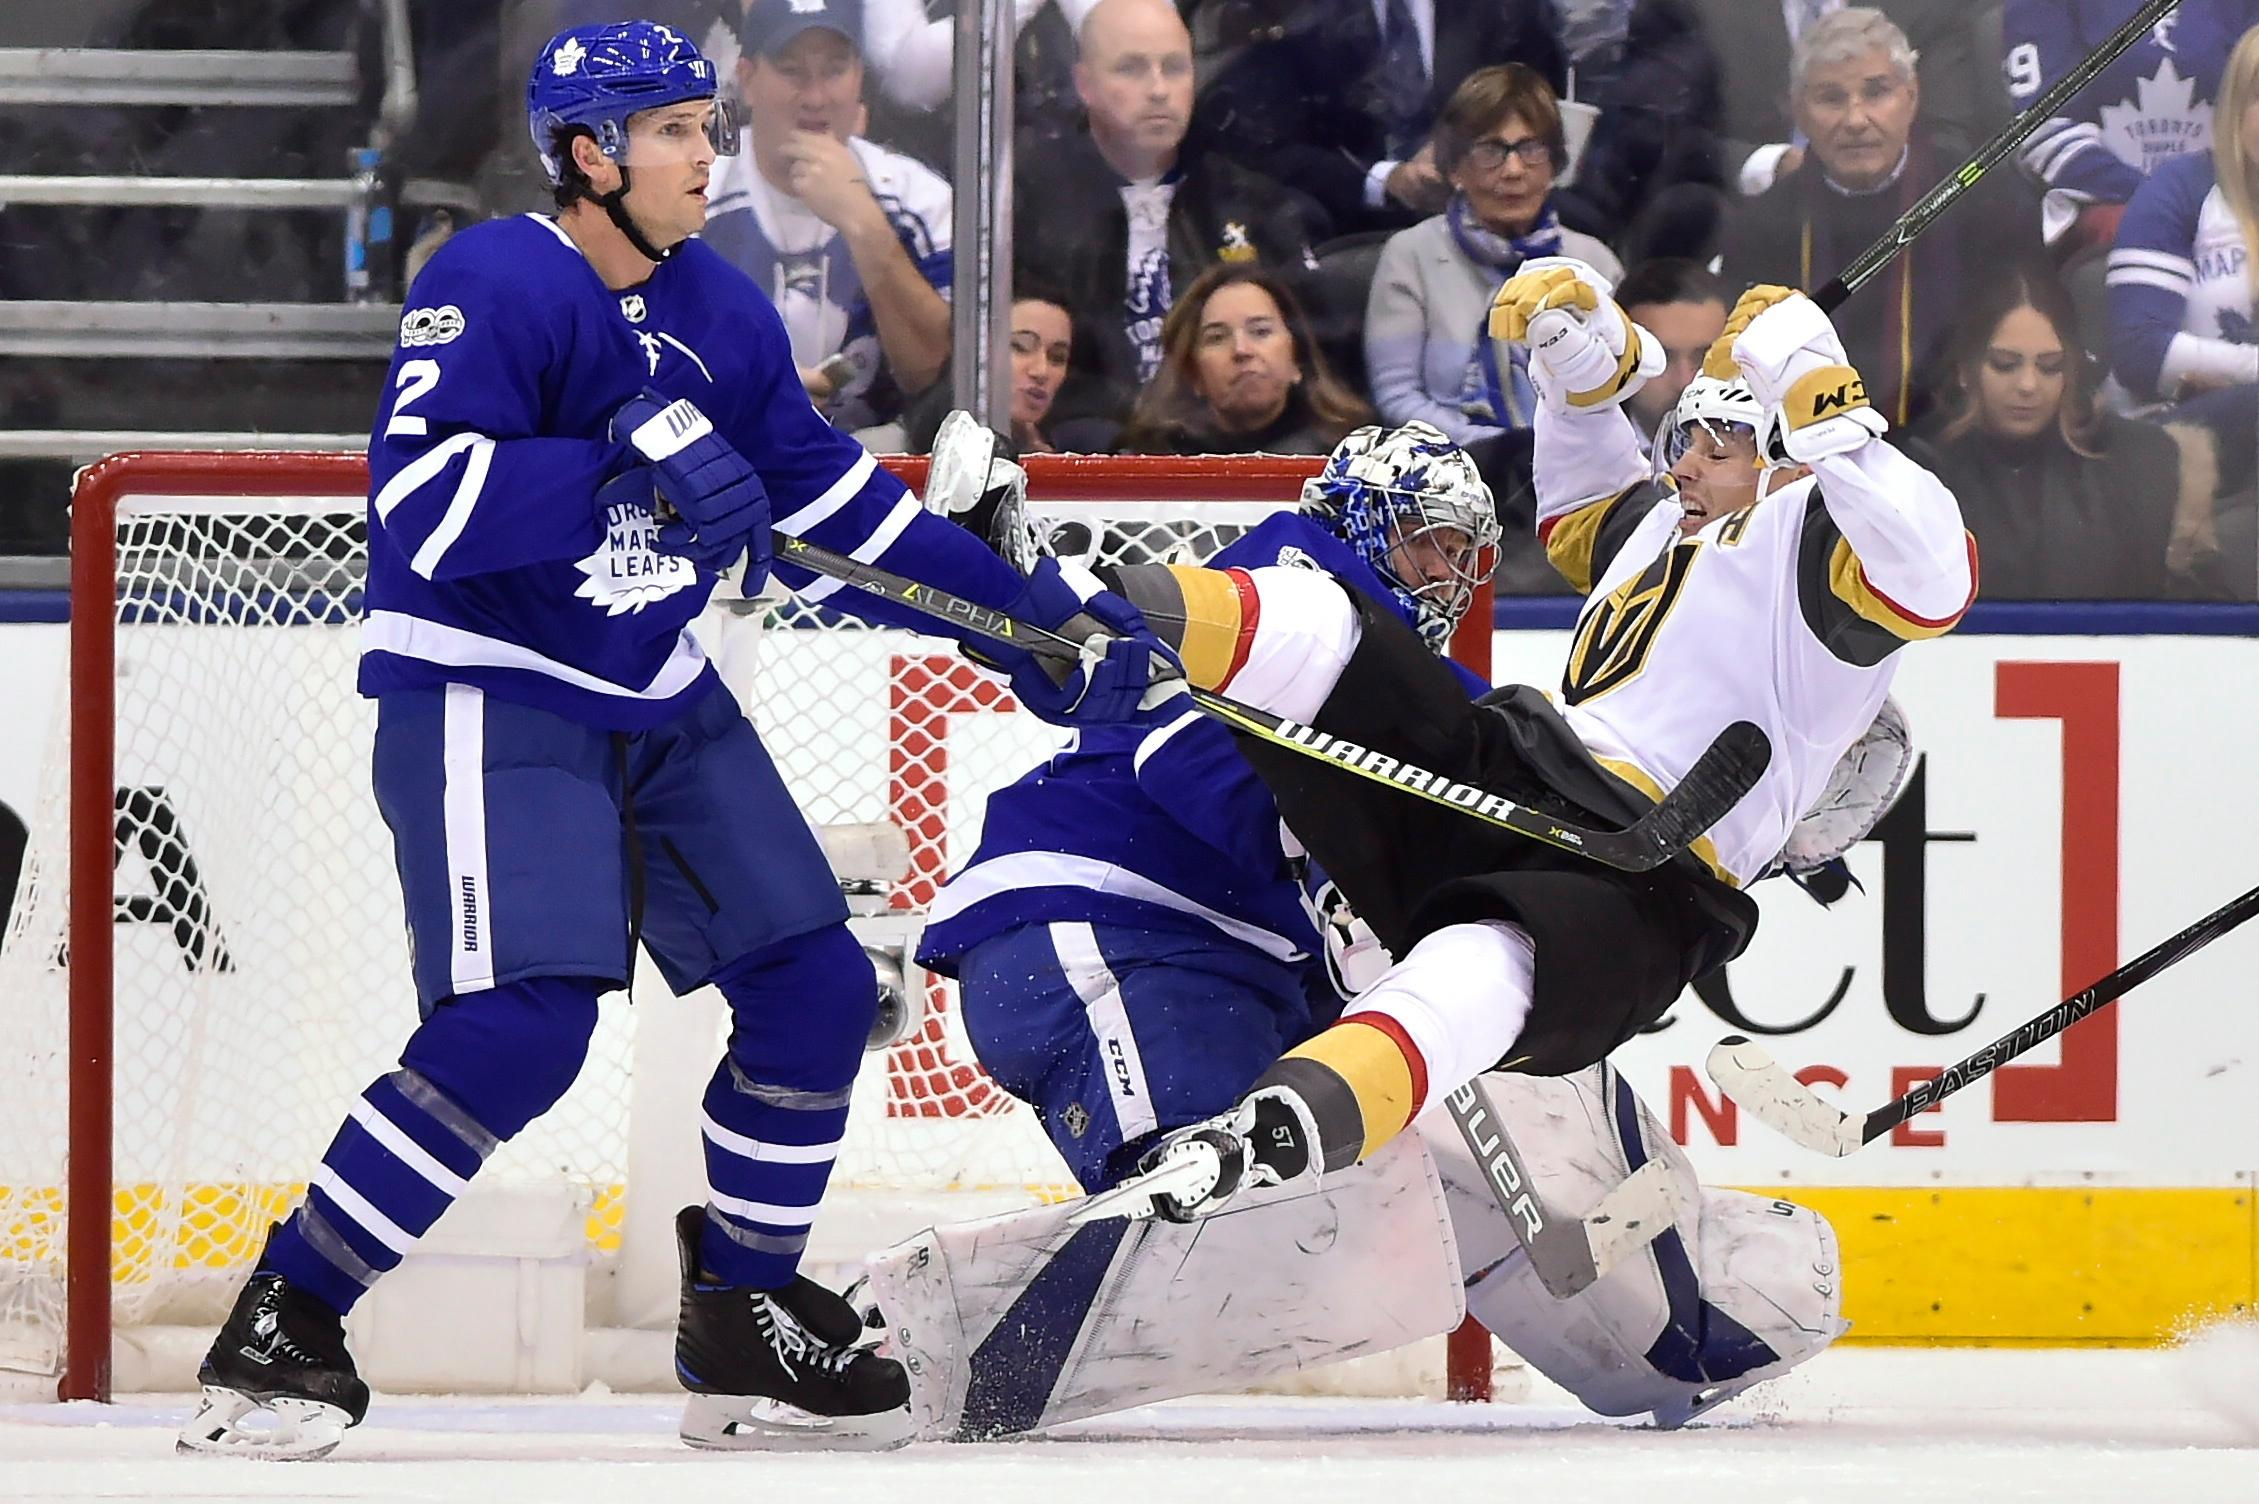 Vegas Golden Knights left wing David Perron (57) falls over Toronto Maple Leafs goalie Frederik Andersen (31) as defenseman Ron Hainsey (2) defends during the second period of an NHL hockey game, Monday, Nov. 6, 2017, in Toronto. (Frank Gunn/The Canadian Press via AP)